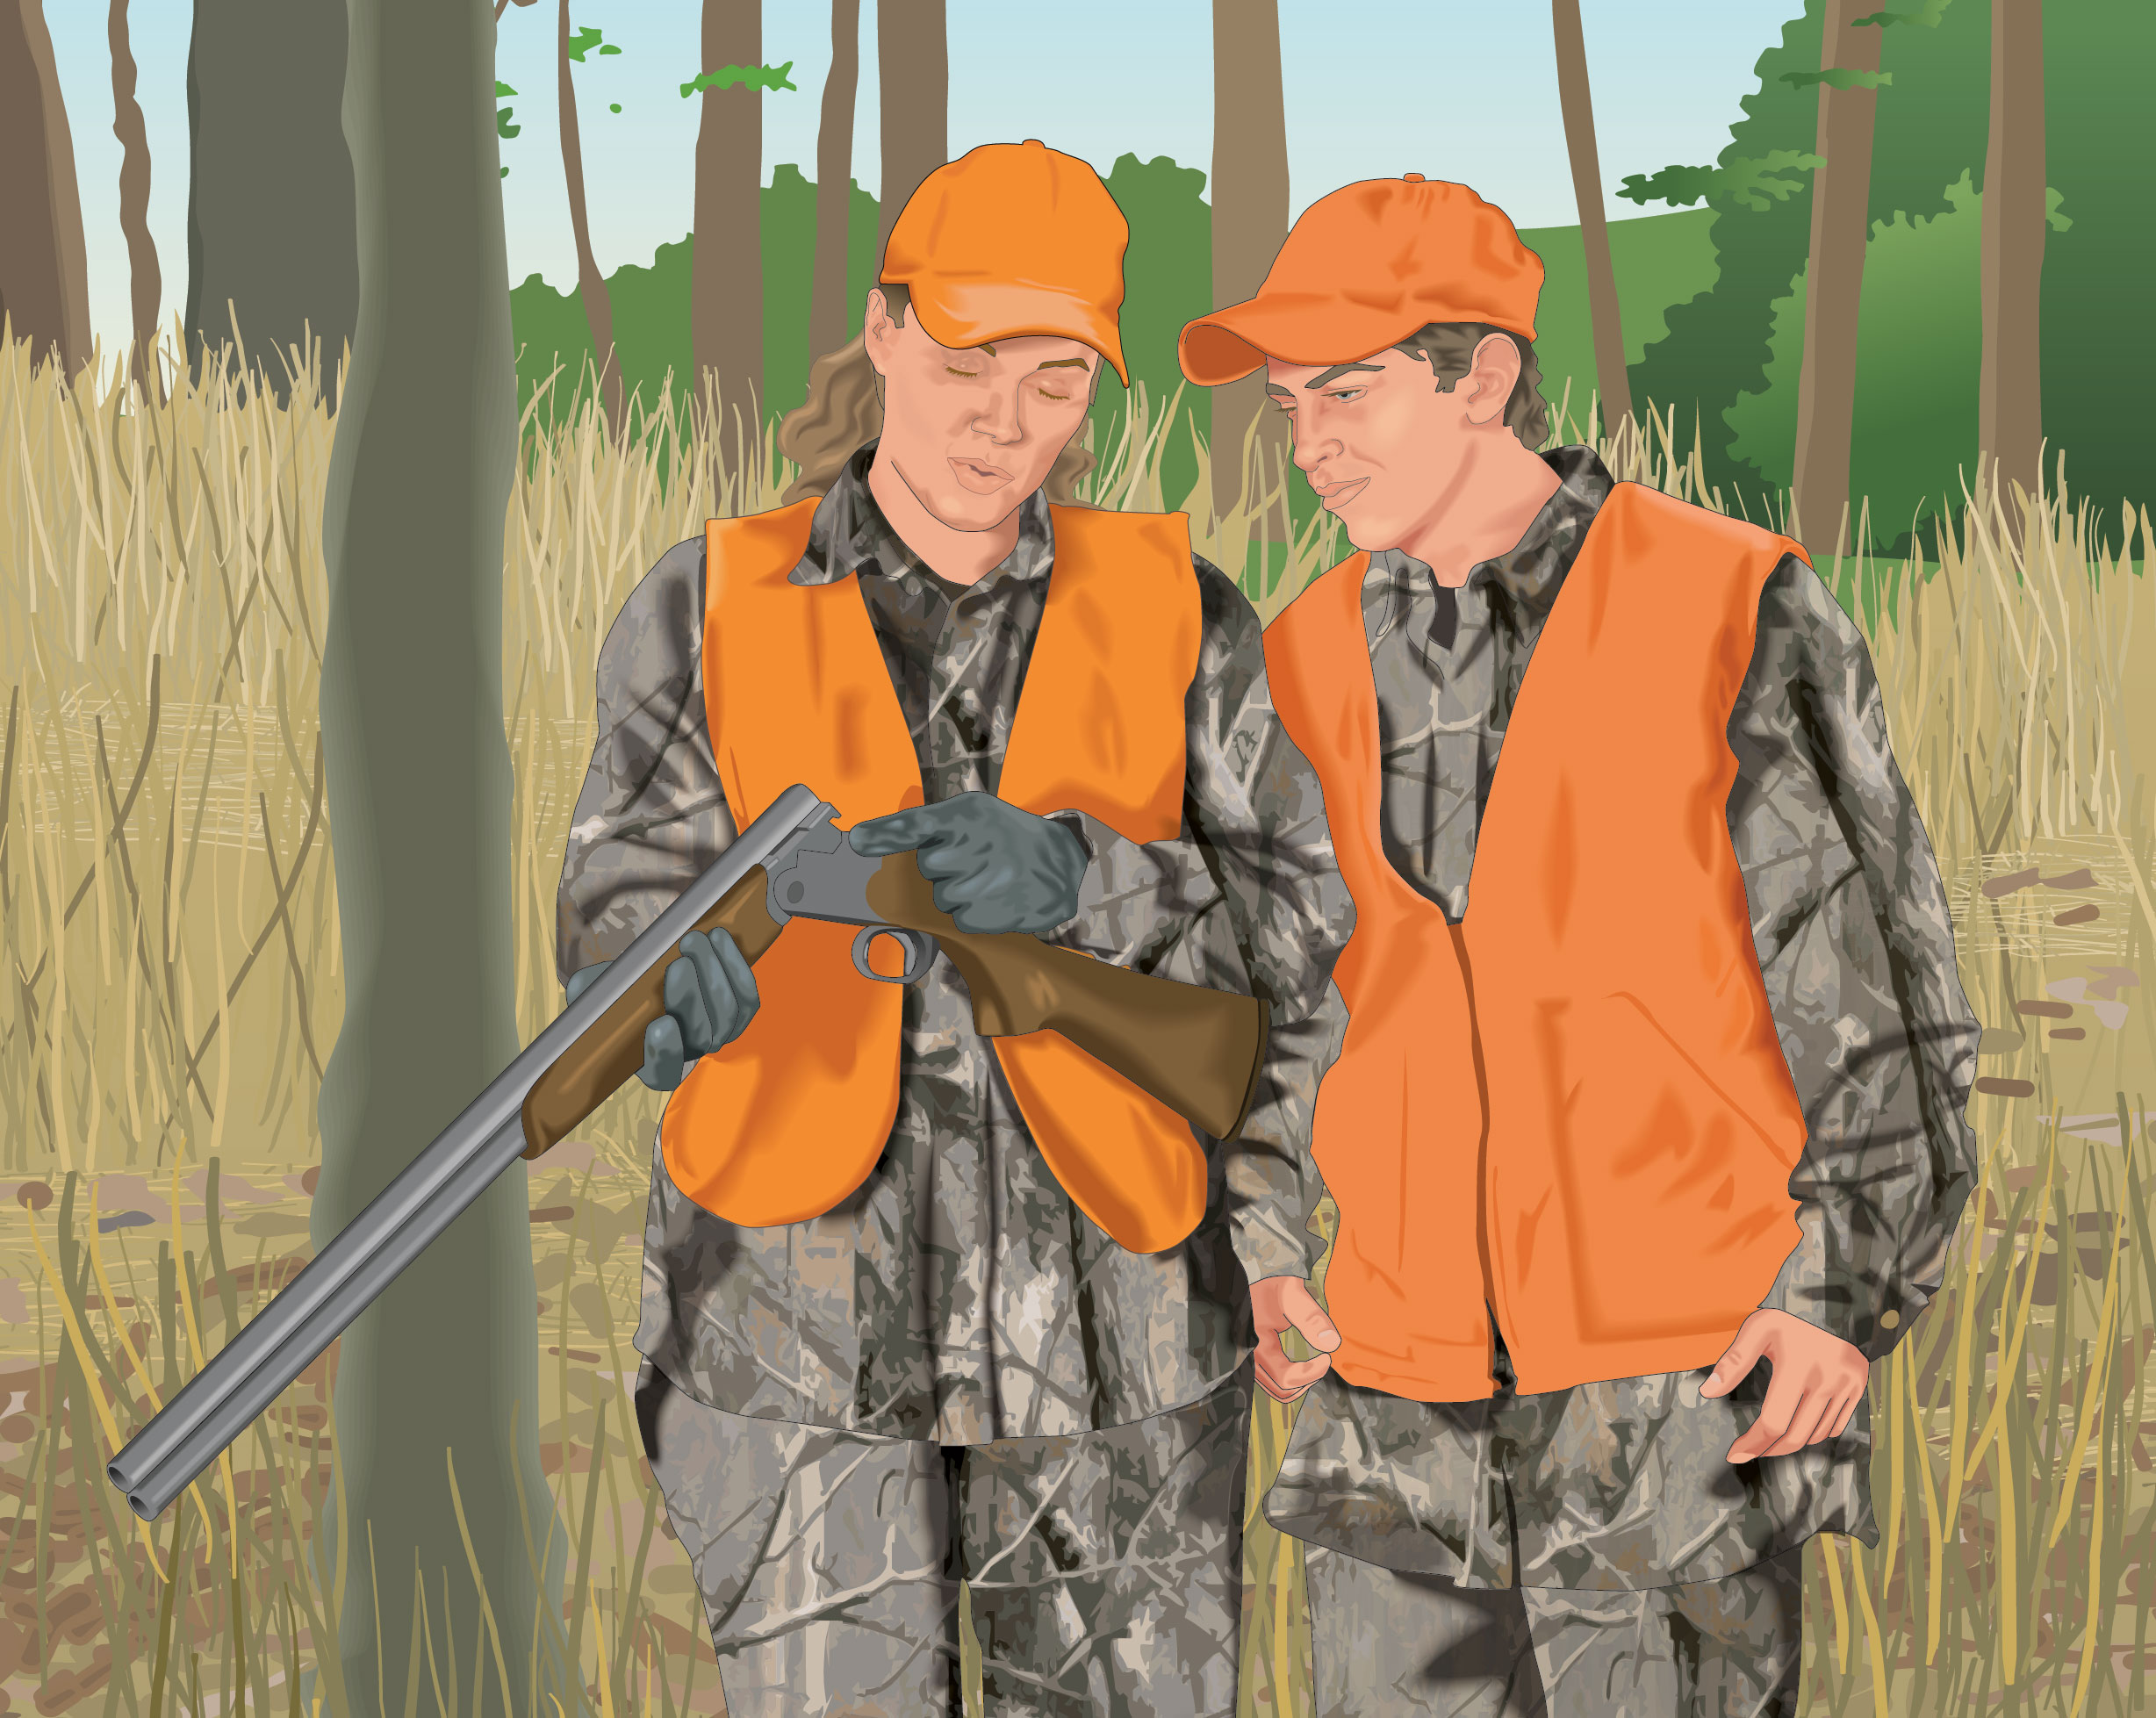 Hunter instructing younger hunter